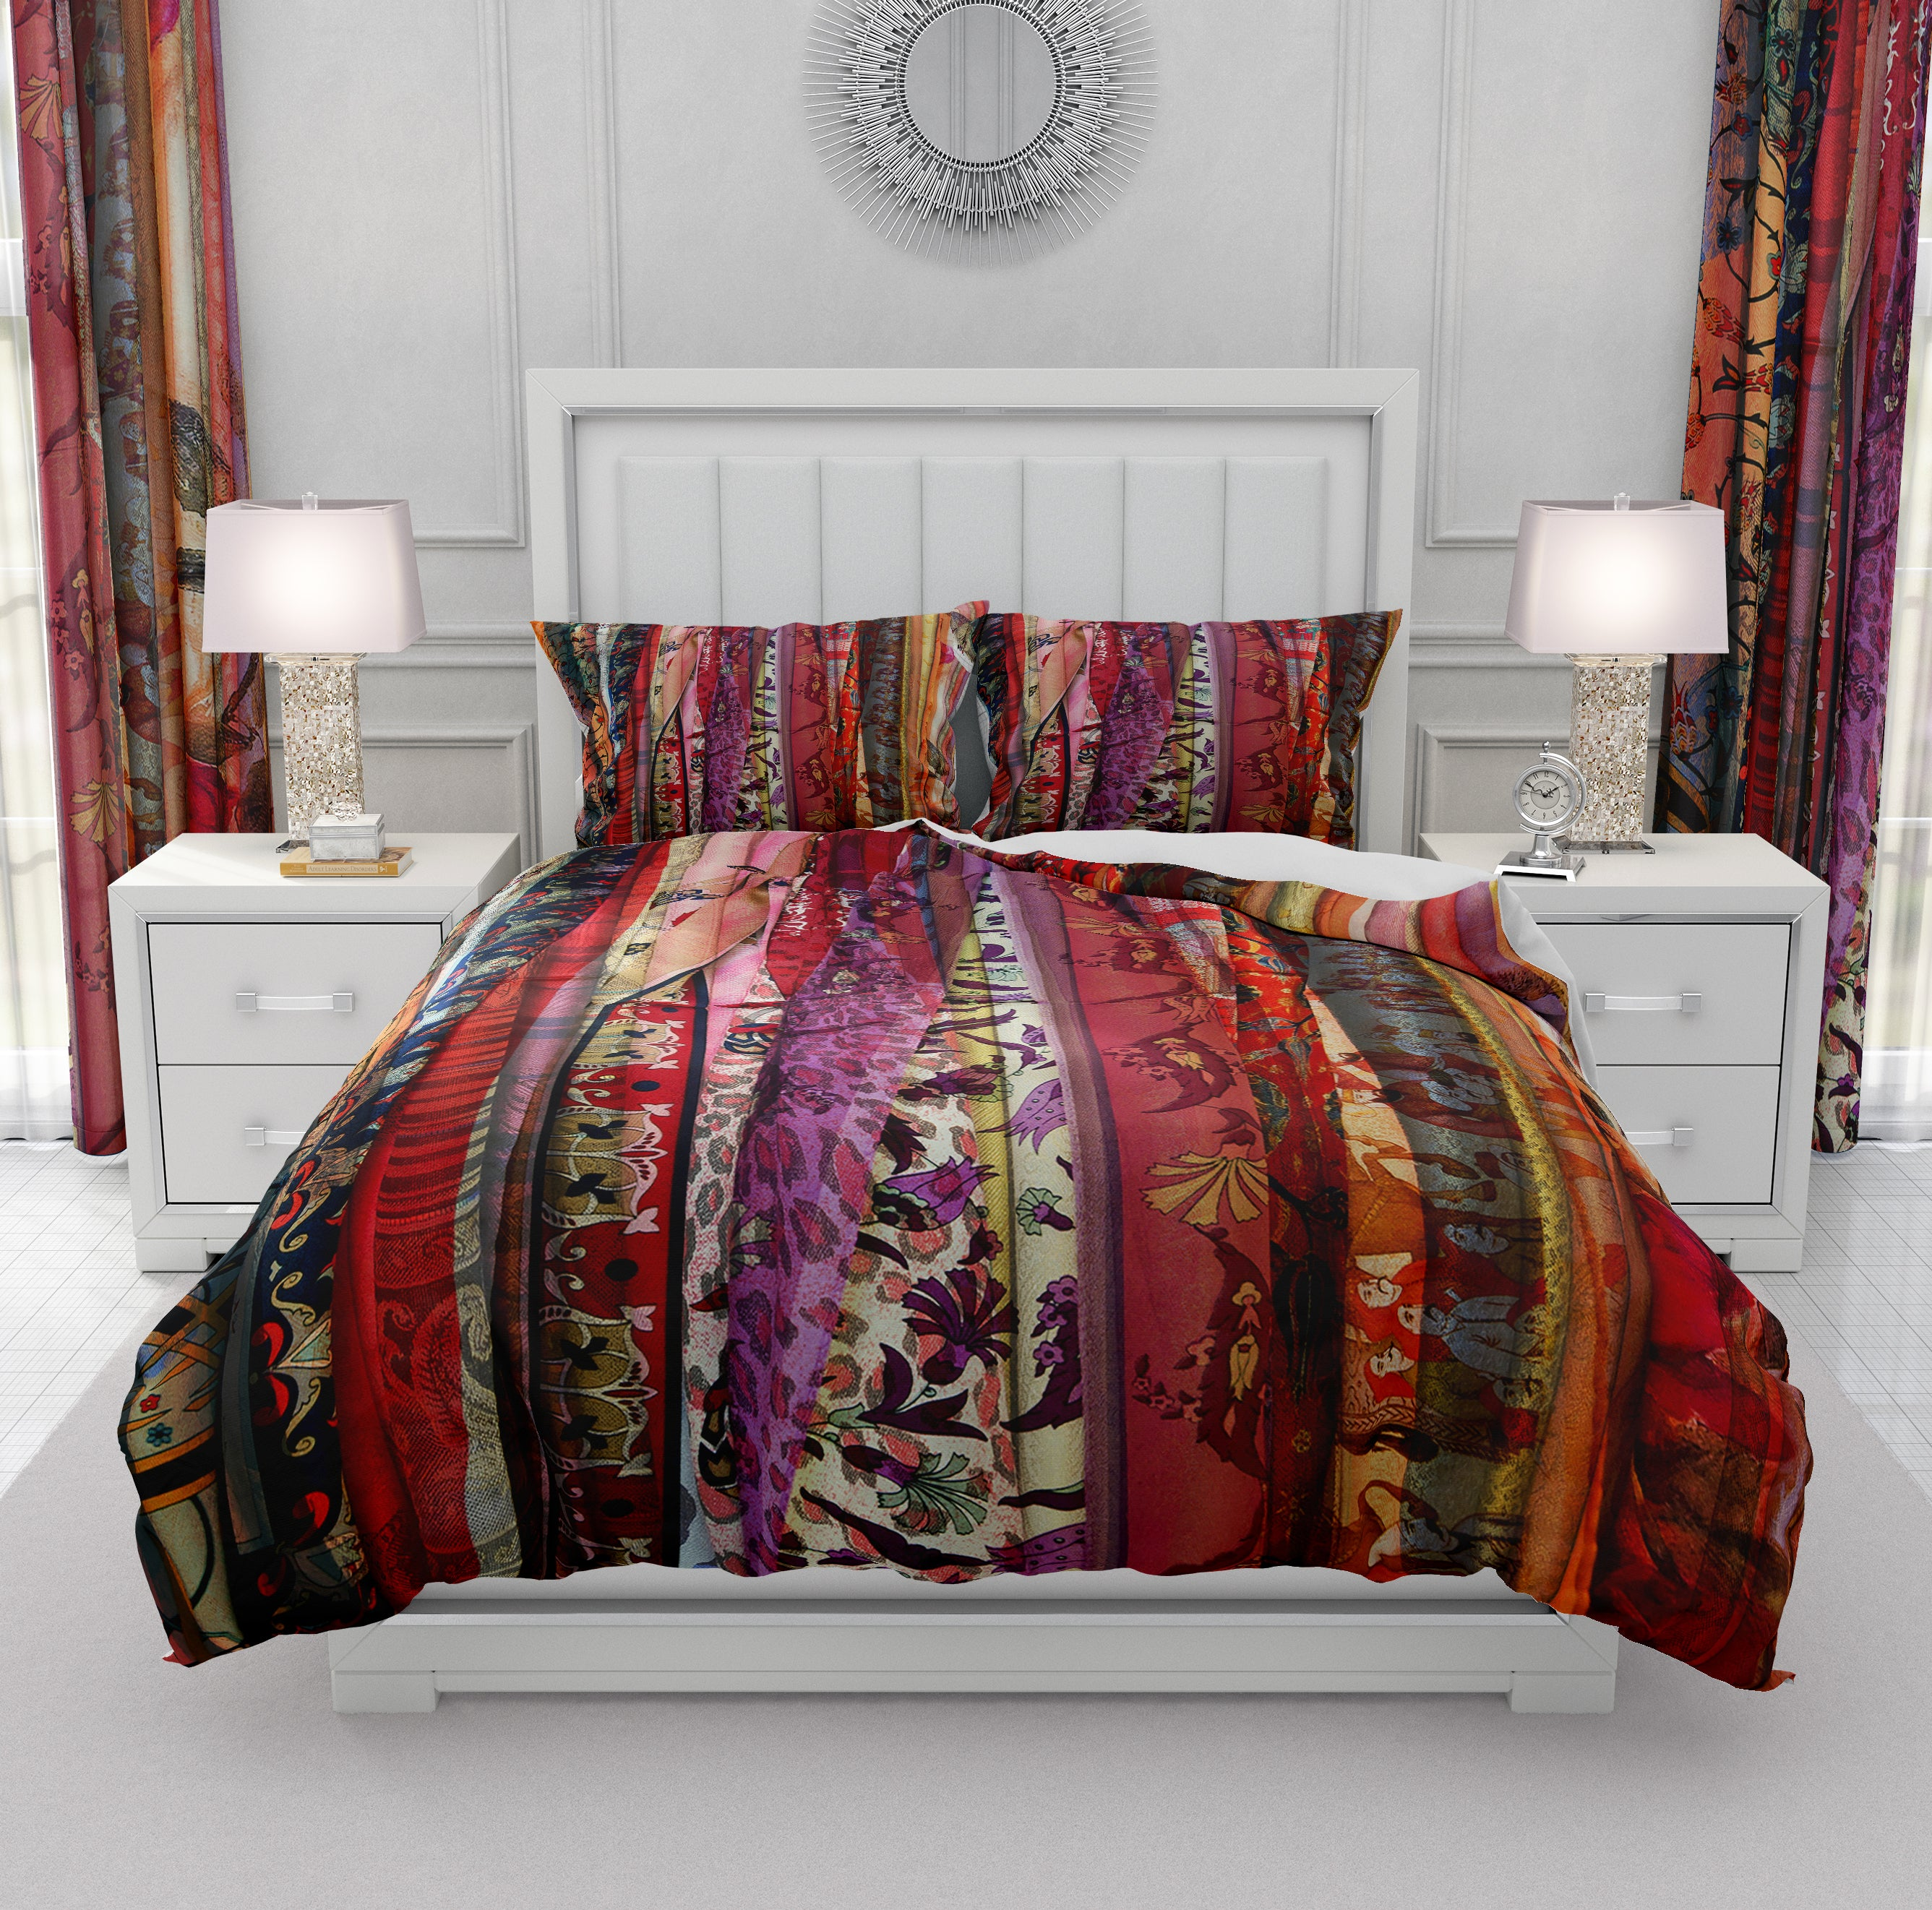 Boho Chic Gypsy Rags Red Bedding